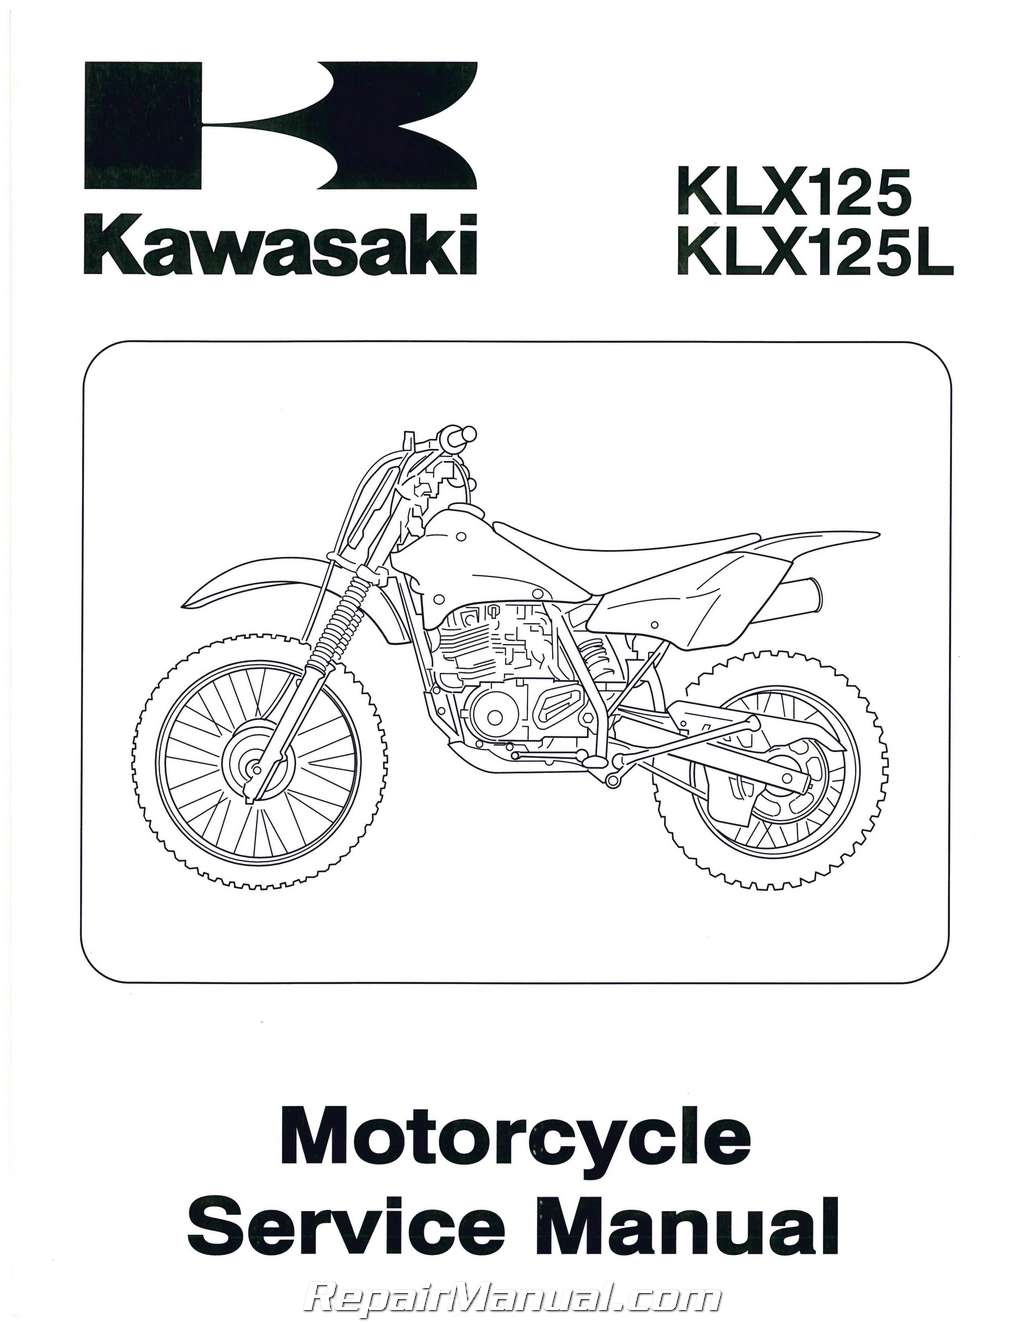 Used 2003 Kawasaki KLX125 KLX125L Motorcycle Repair Manual